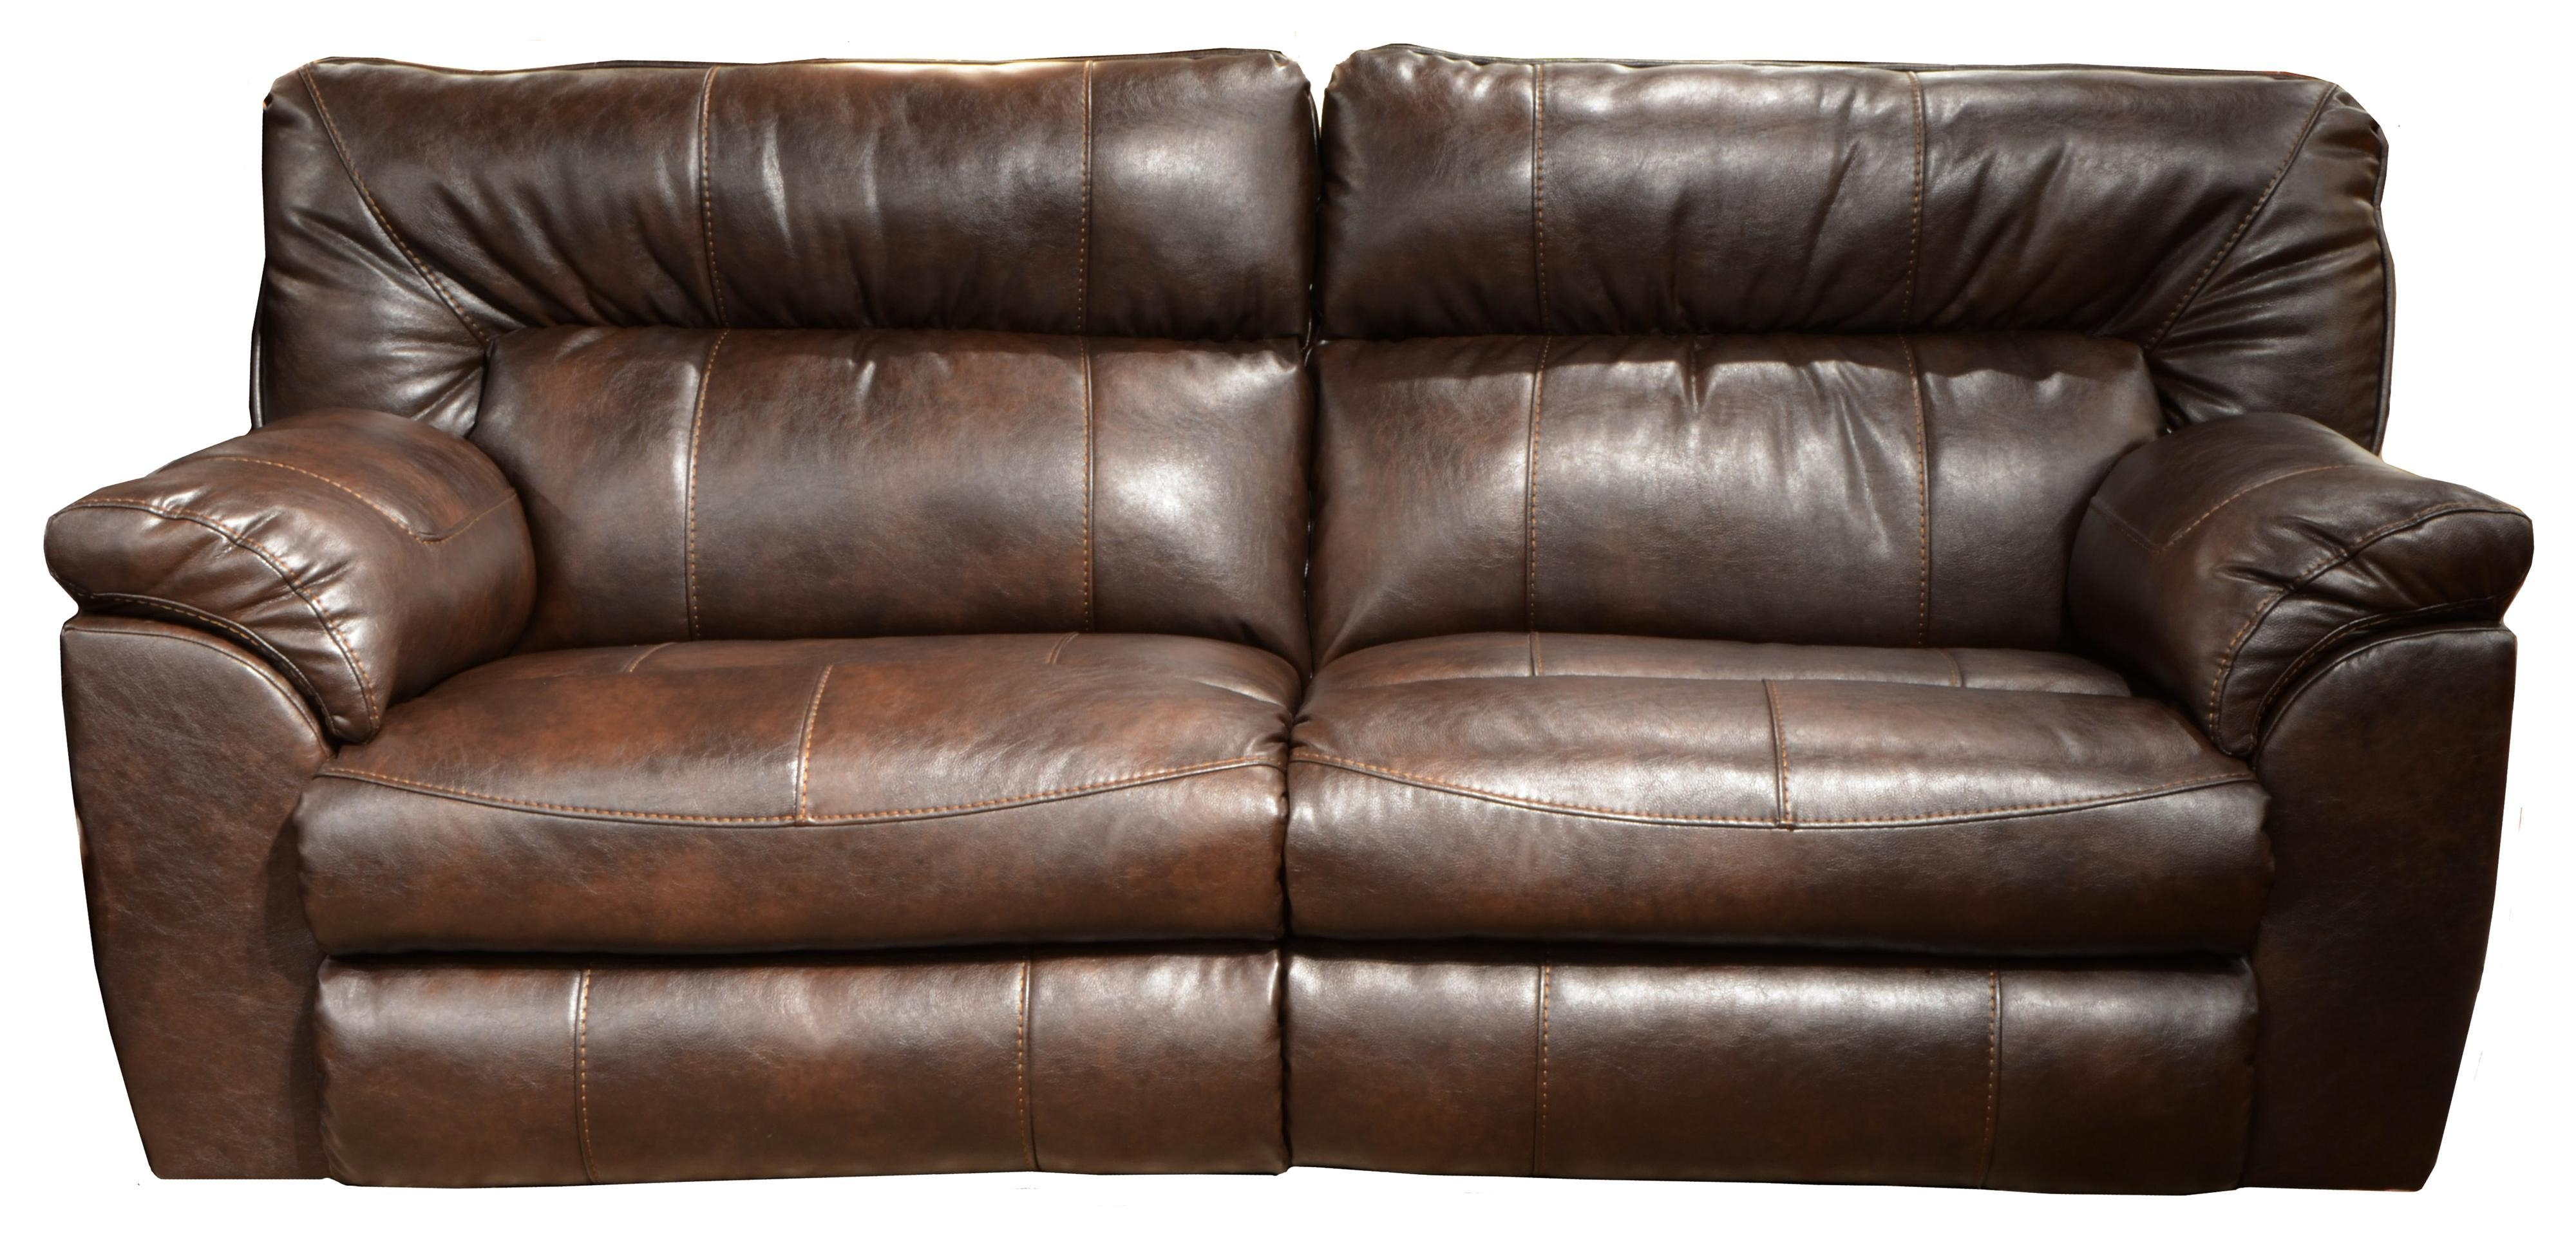 Catnapper Maverick Extra Wide Reclining Sofa – Efo Furniture With Regard To Catnapper Sofas (View 2 of 20)